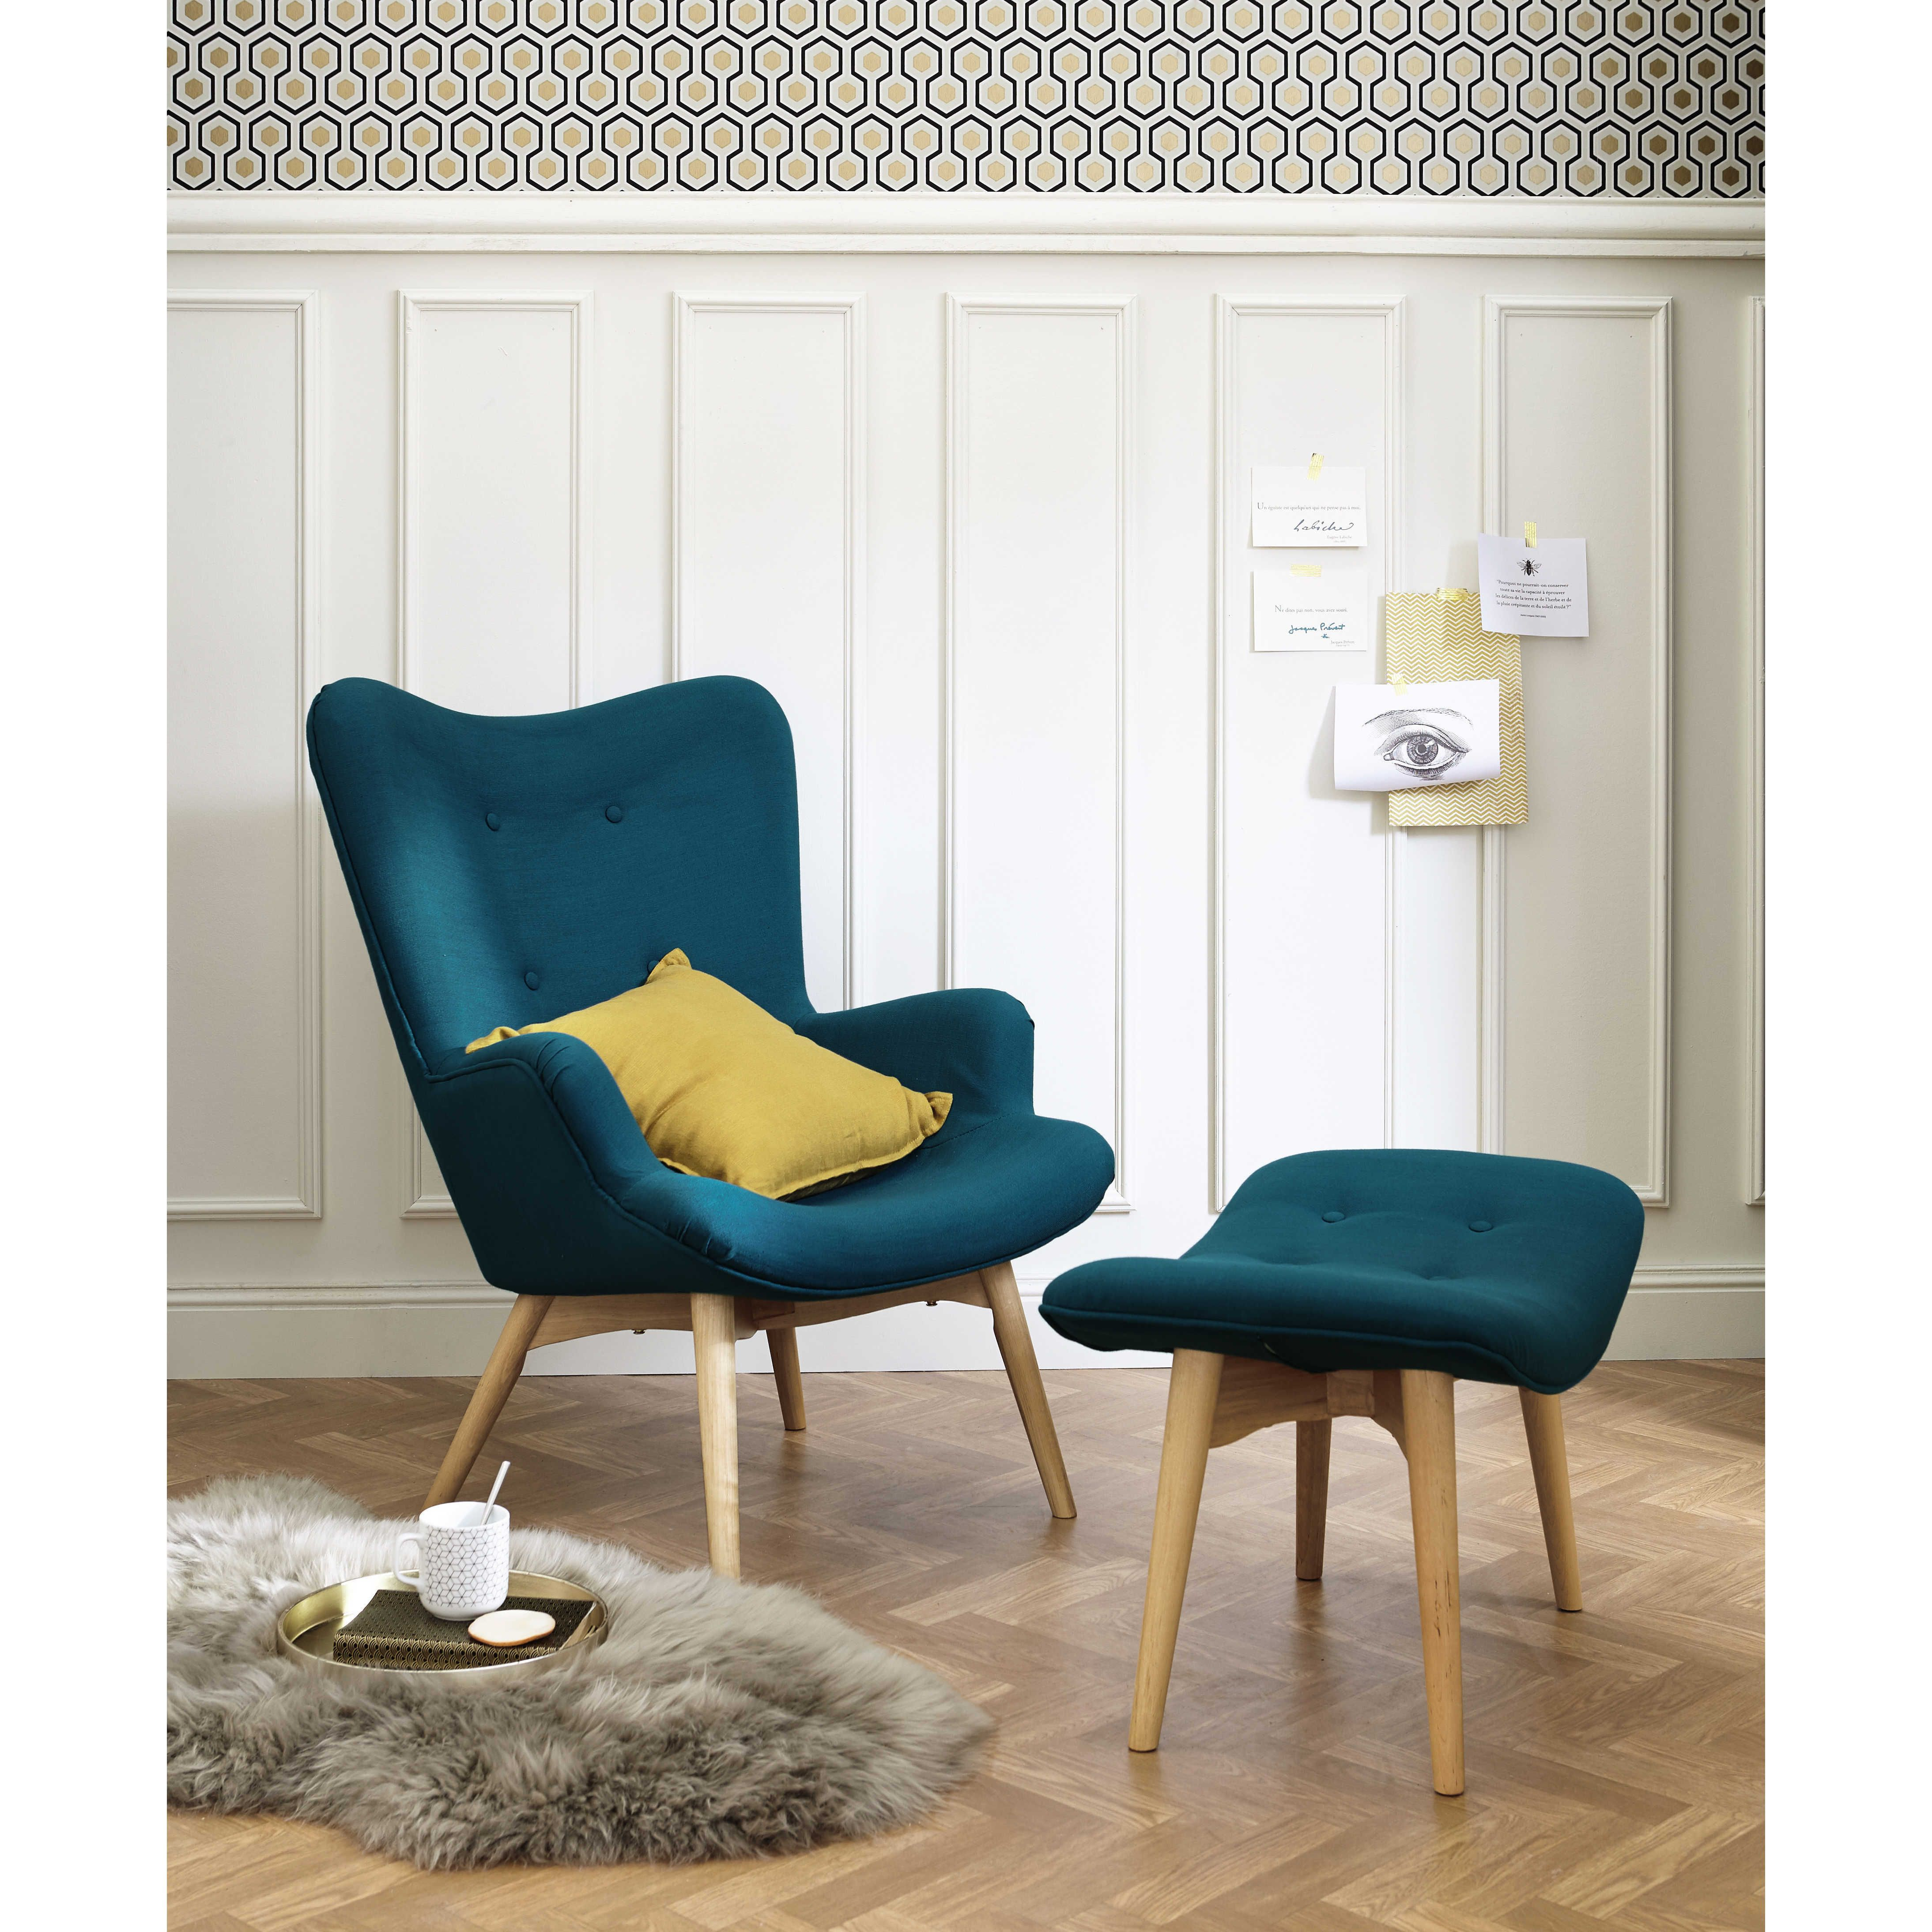 Scandinavian Petrol Blue Fabric Armchair | Stilvoll wohnen ...